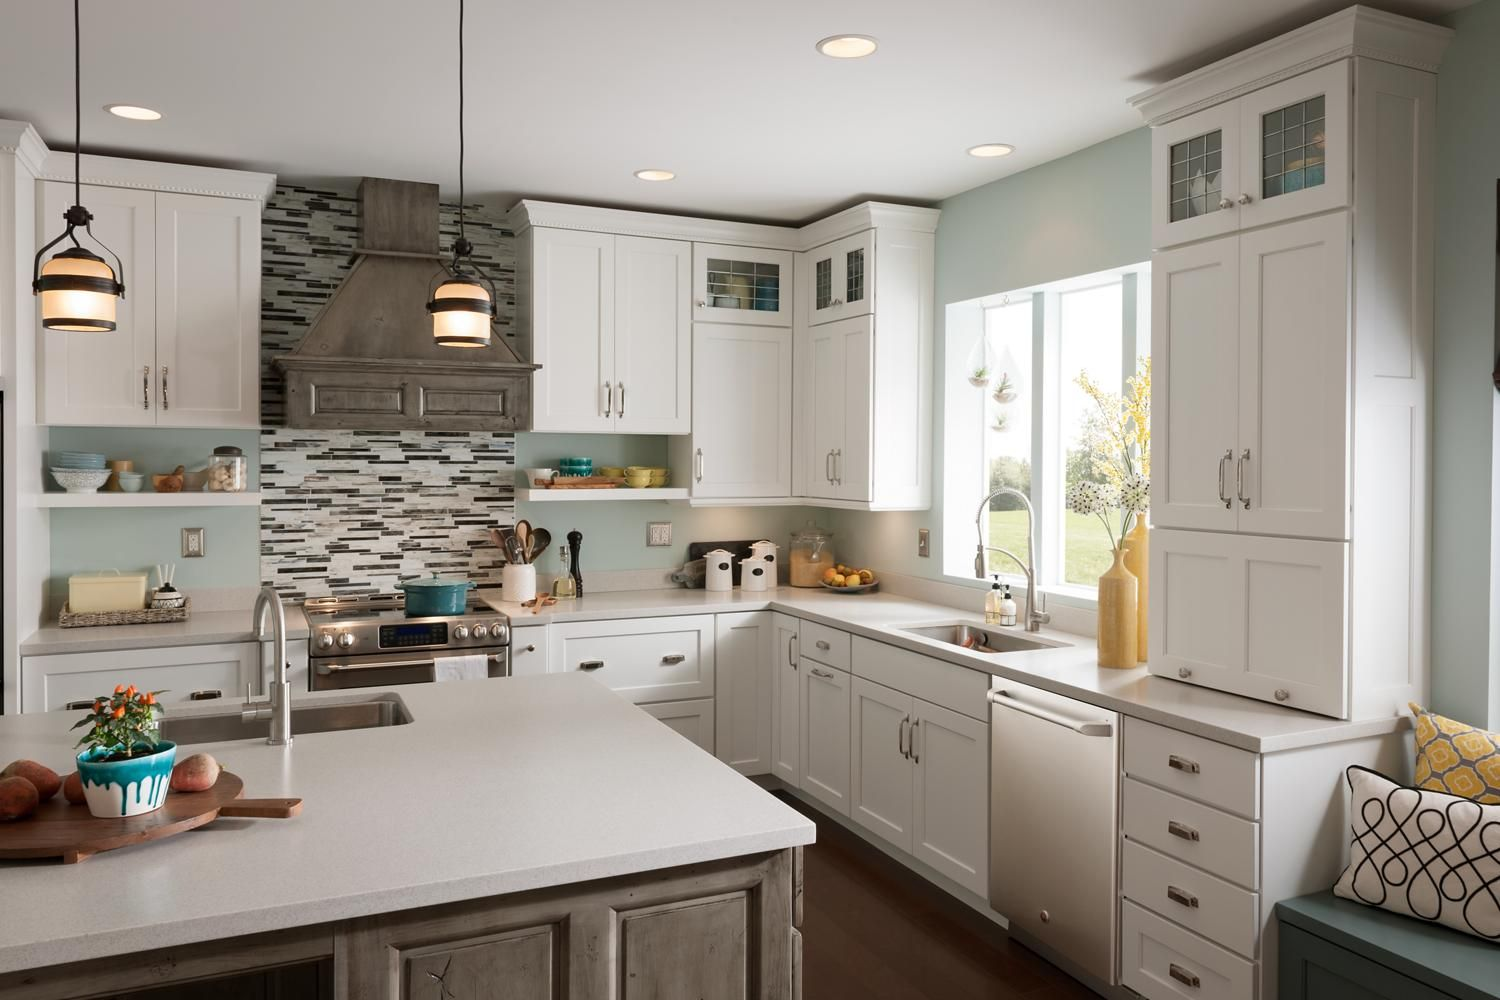 Medallion At Menards Cabinets Kitchen And Bath Cabinetry Menards Kitchen Cabinets Kitchen Cabinet Styles Menards Cabinets